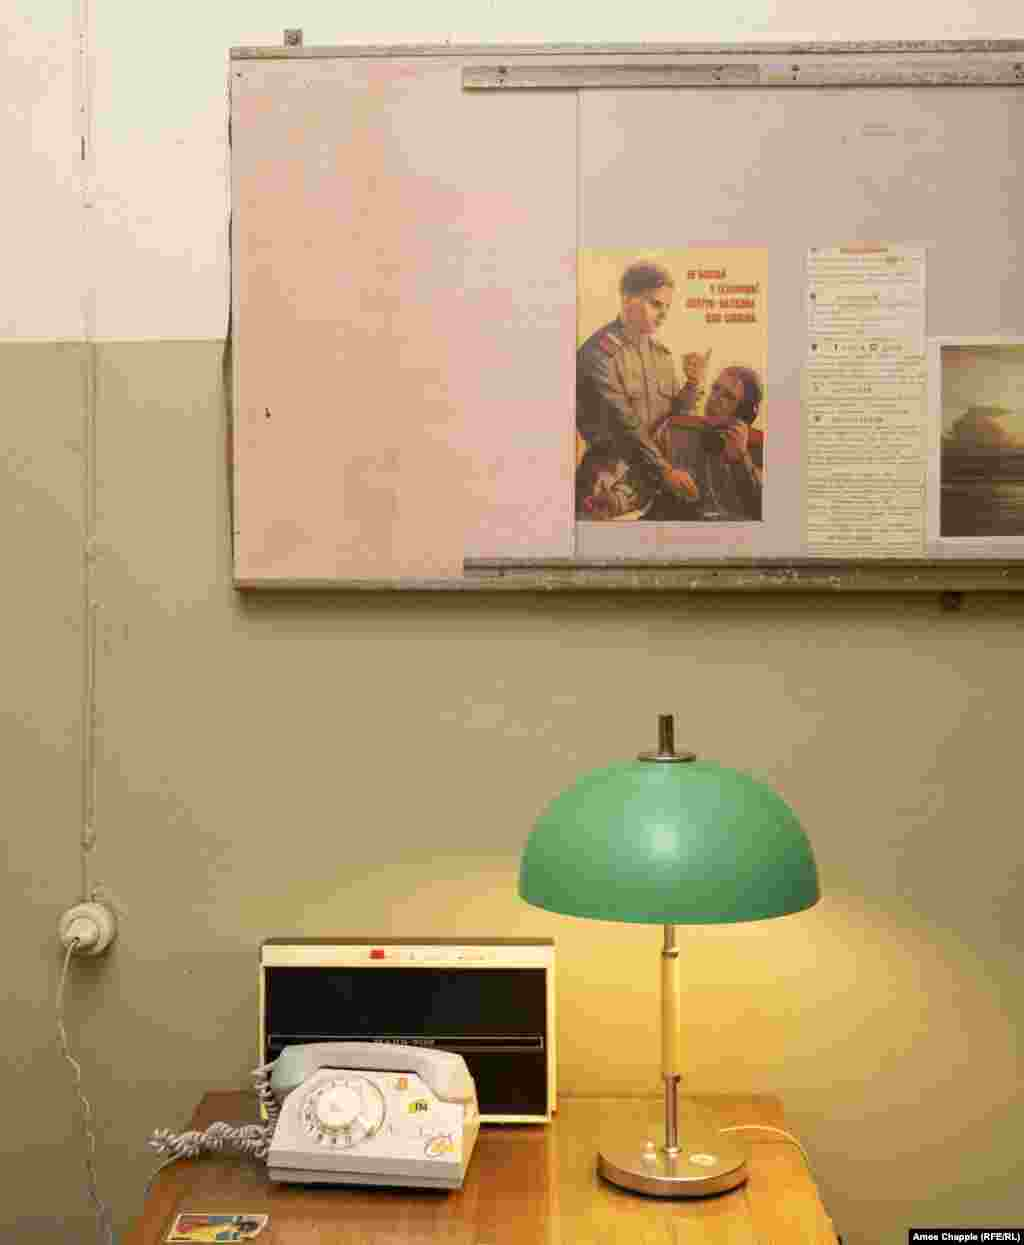 An office in the bunker with a poster reminding comrades not to chat on the telephone in case spies are listening. Kinder believes the ban on photography in some rooms is more about maintaining the mystique than hiding sensitive information.